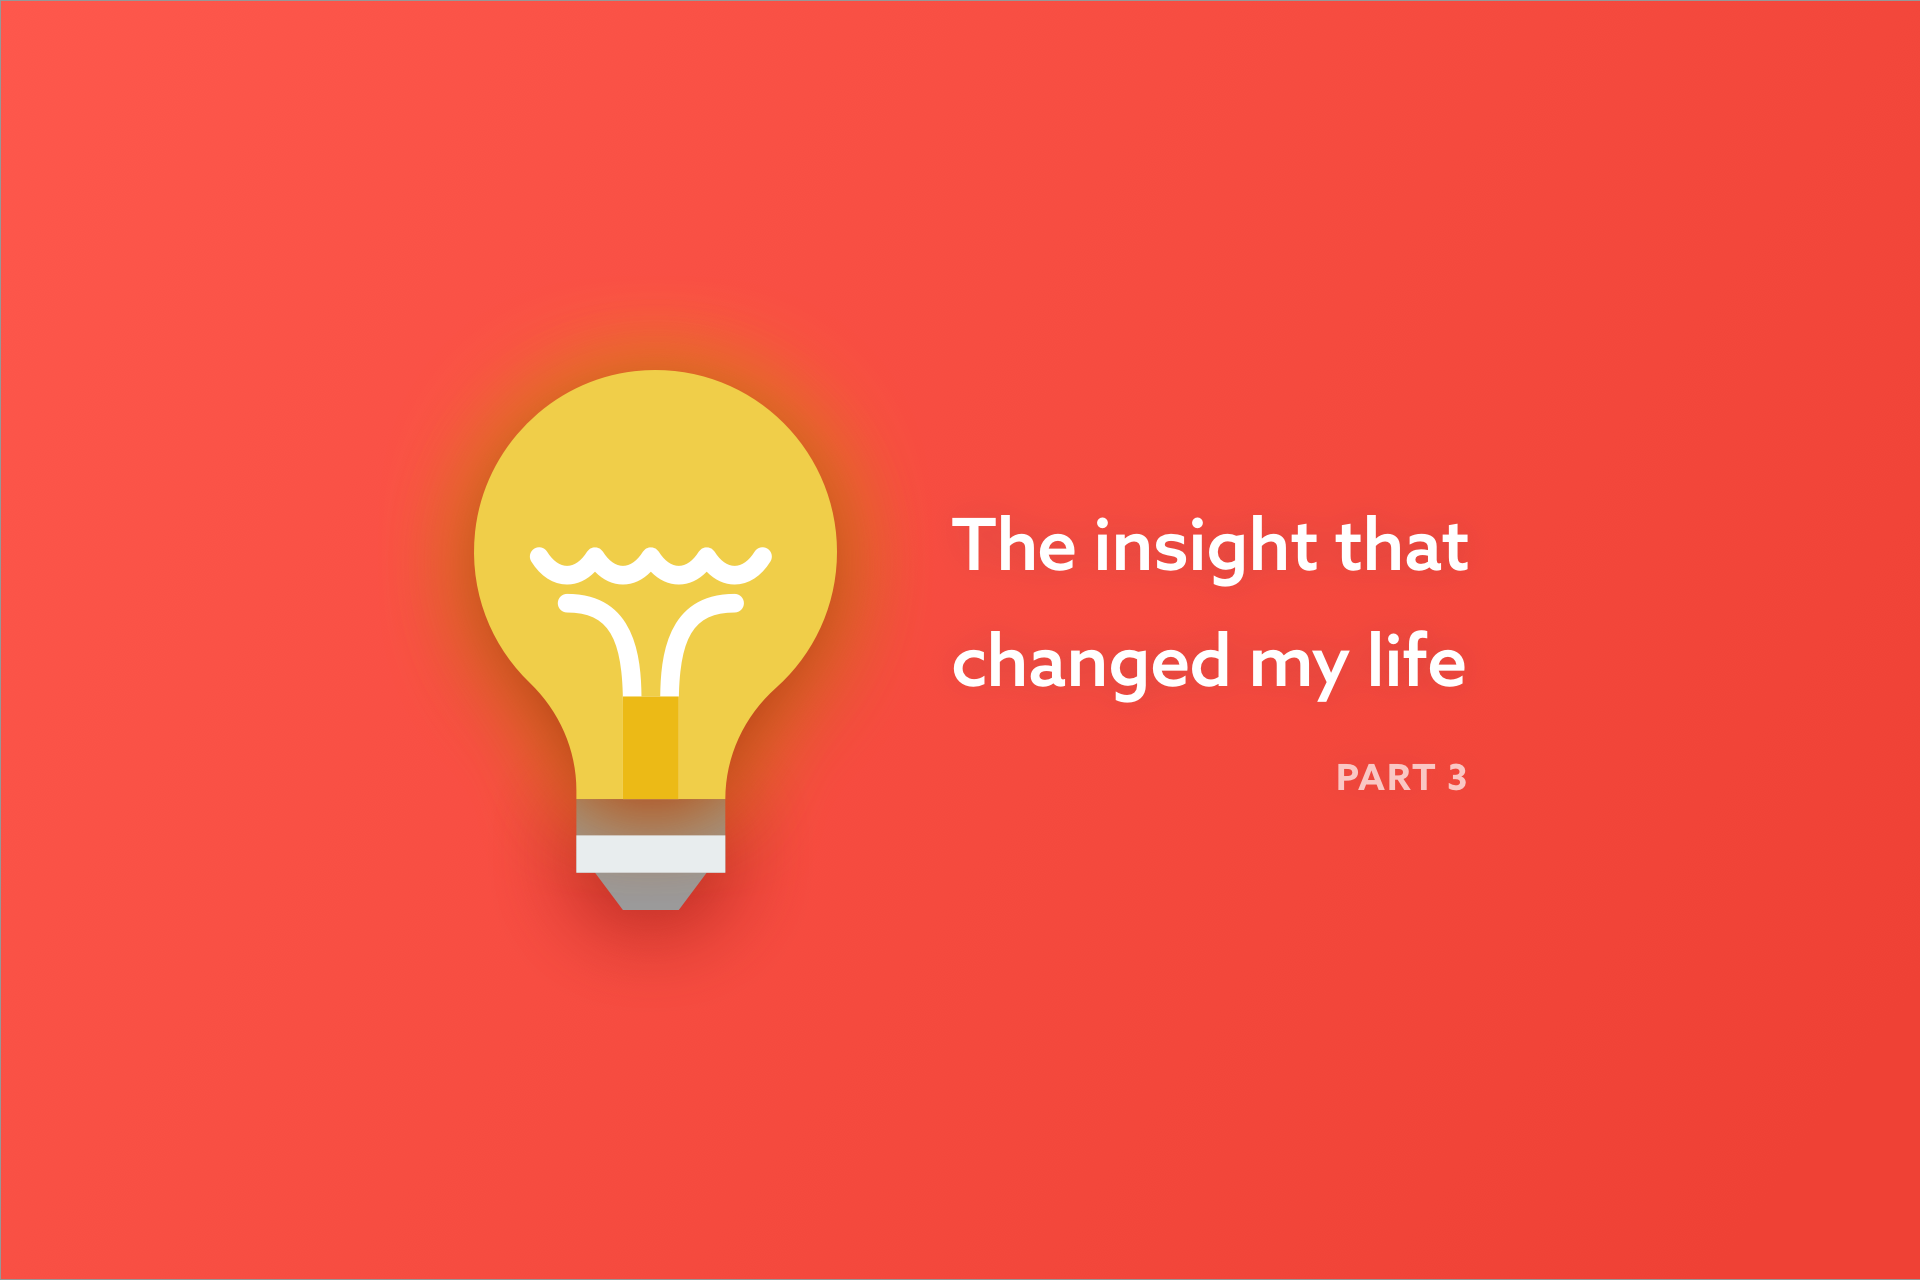 The insight that changed my life (Part Three)